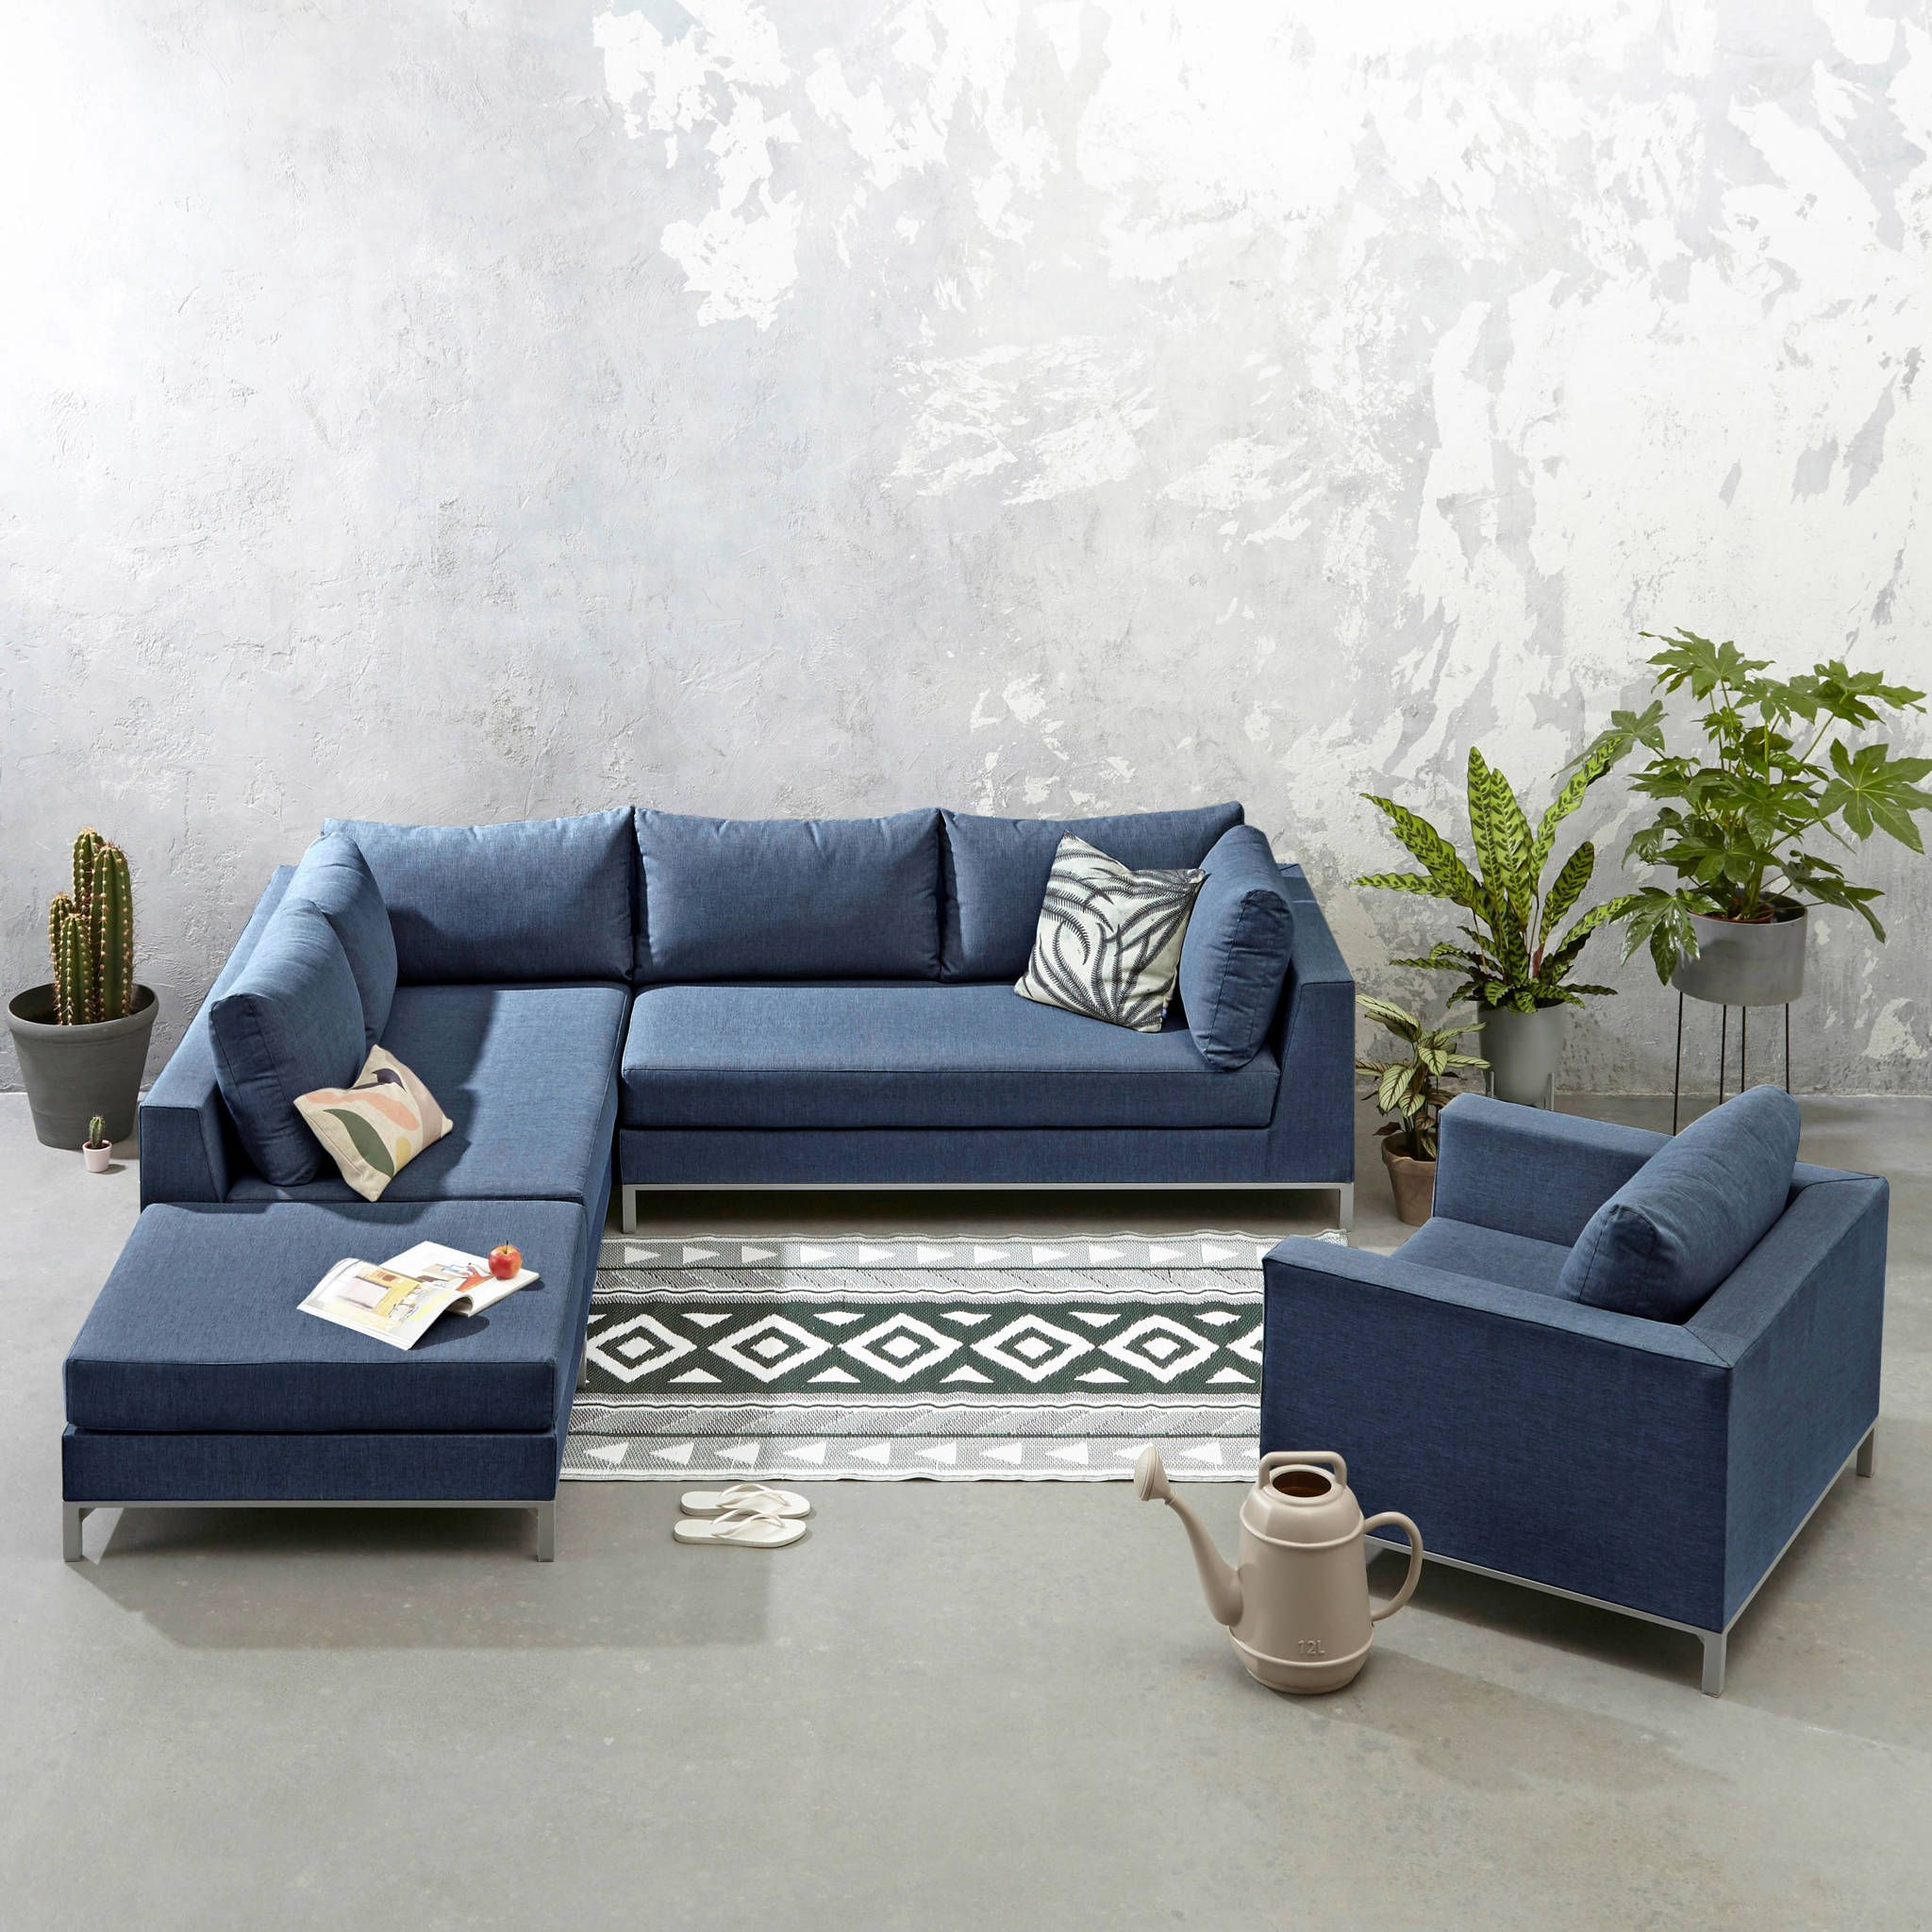 Loungeset Hoekbank Fauteuil.Exotan All Weather Loungeset Links Met Fauteuil Mijn